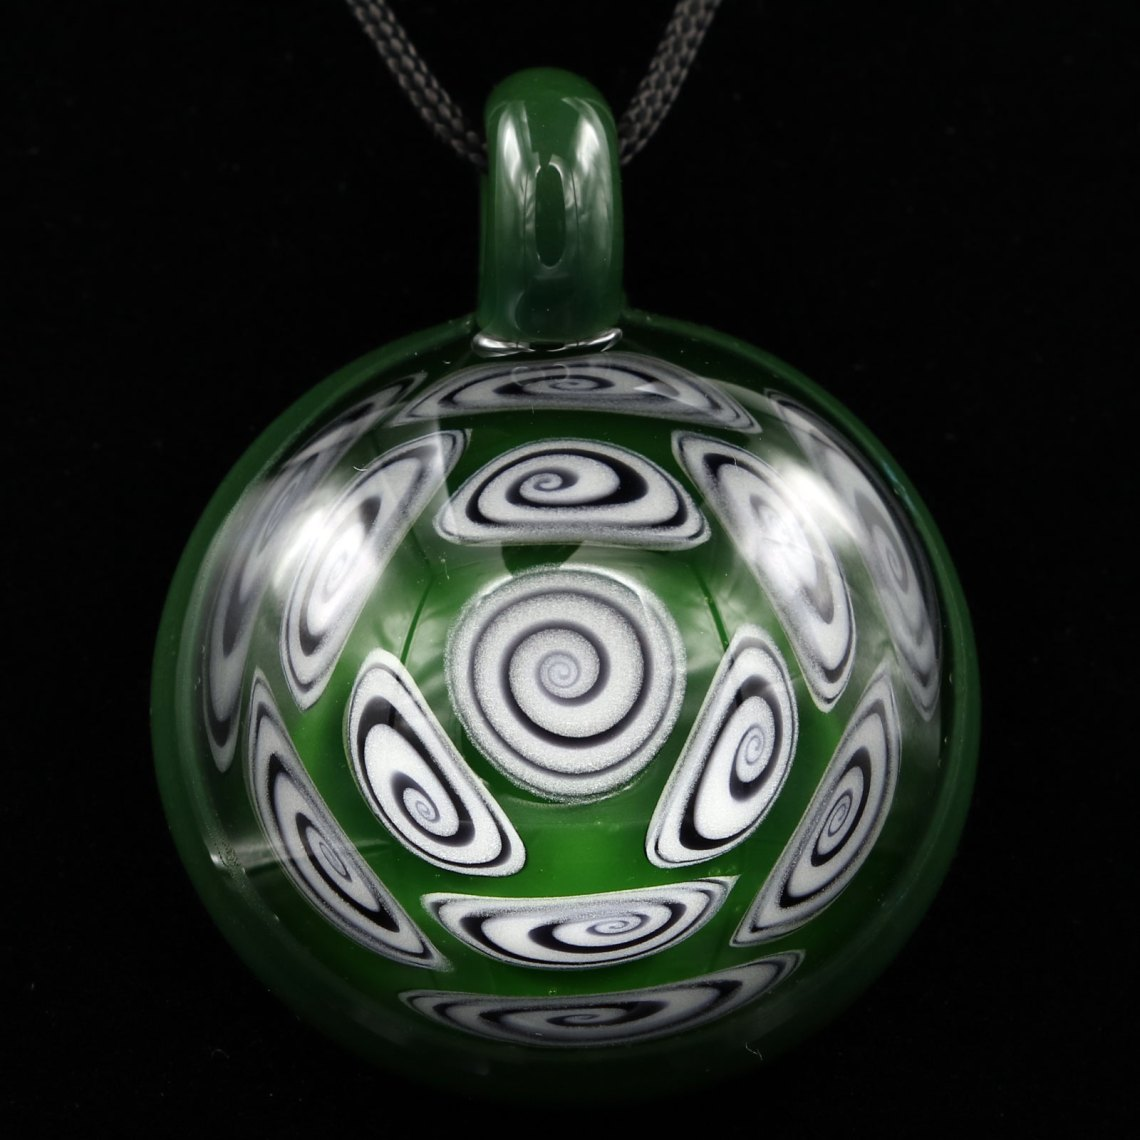 Kaja Glass – 13 Section Tree Hugger and Illuminati Microspiral Pendant